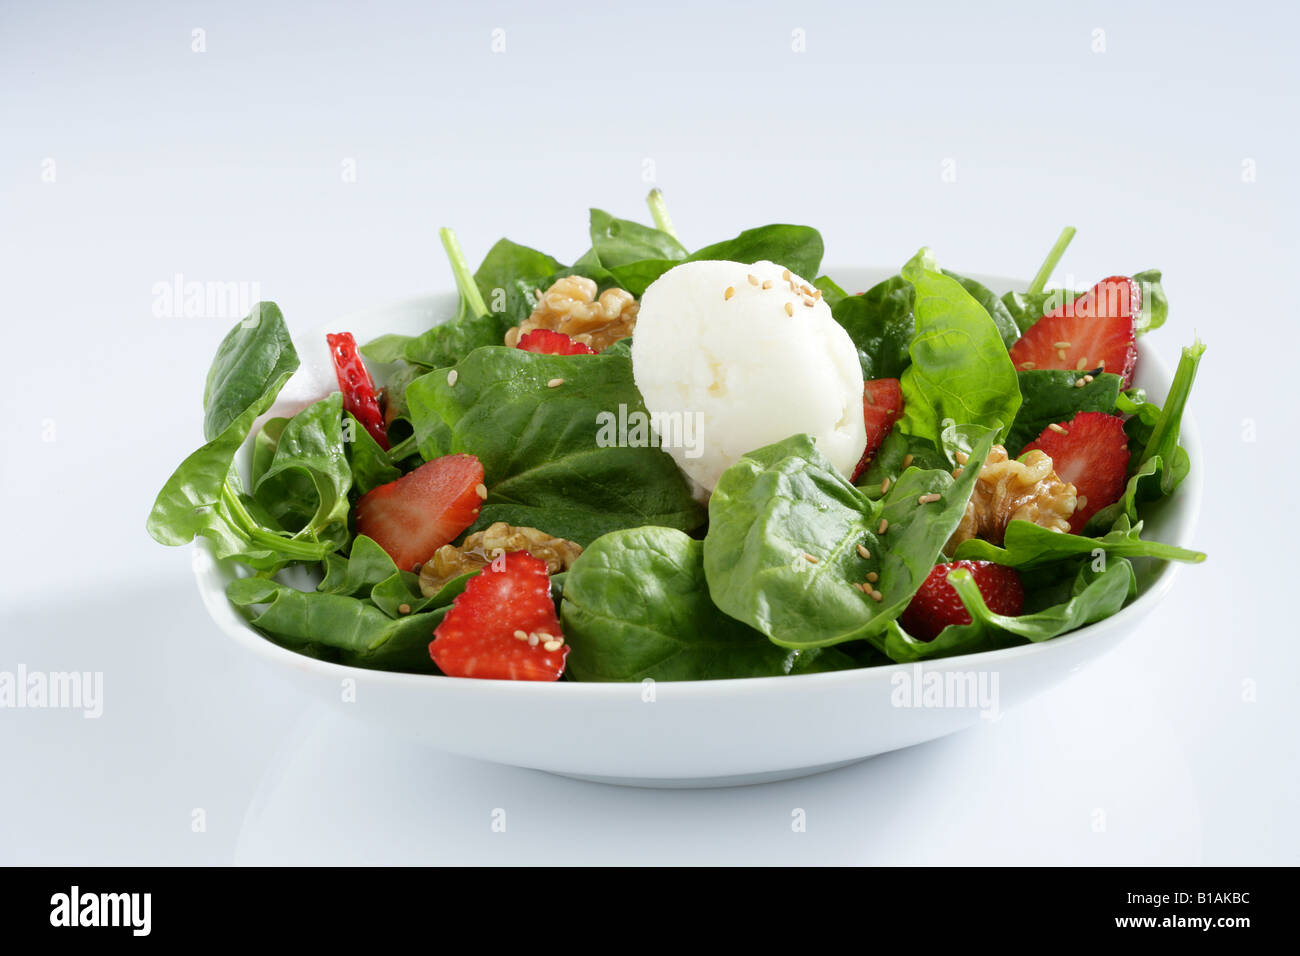 Florentine's salad with ice cream - Stock Image